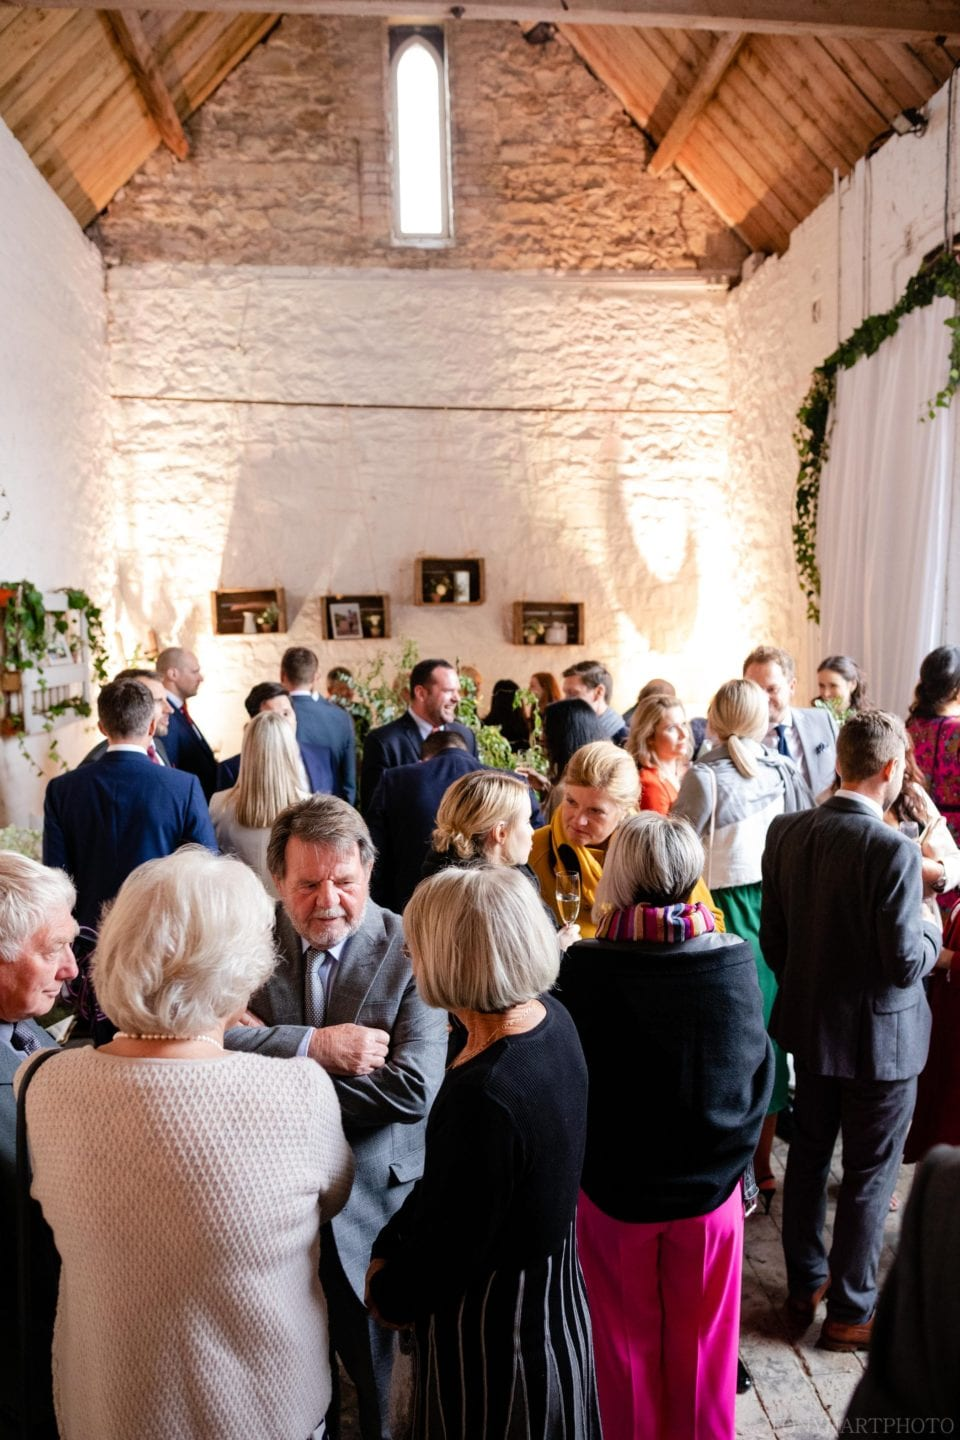 Guests in a side room at Longbourn Barn